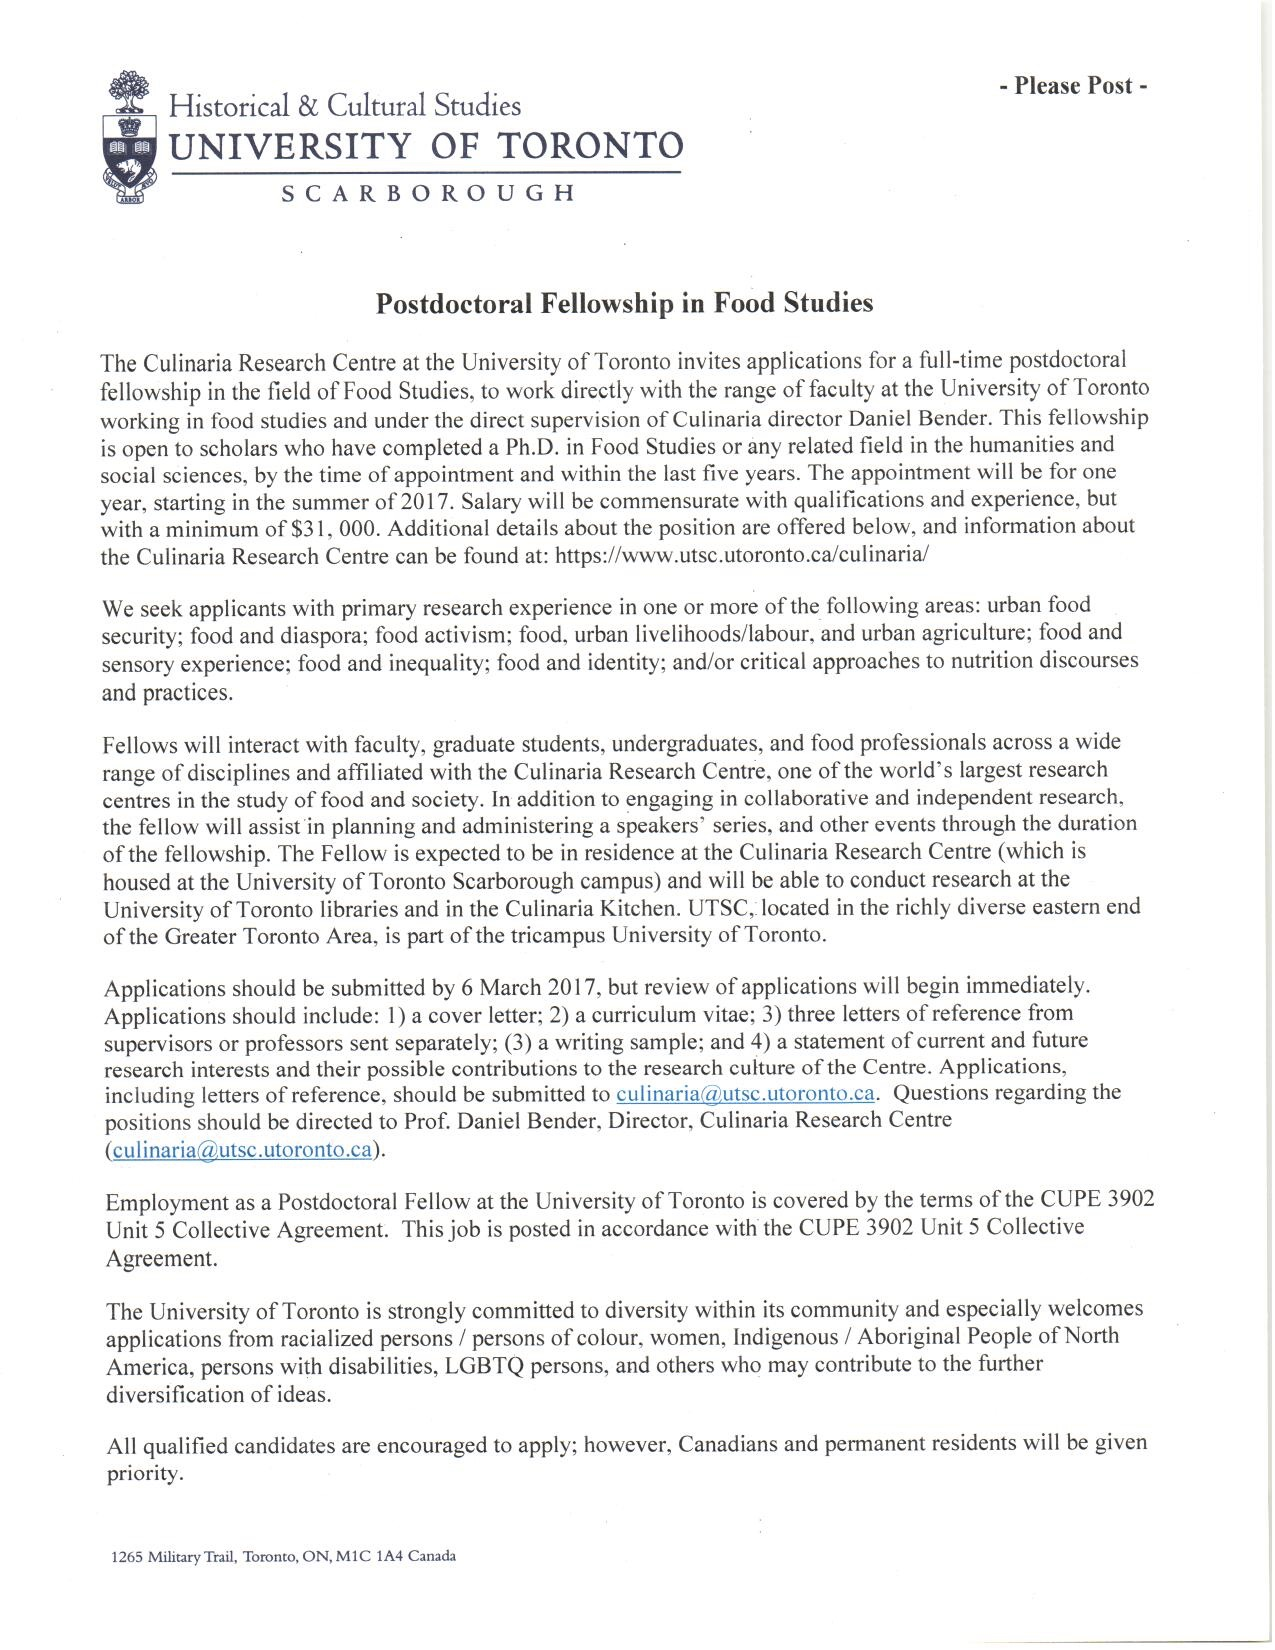 Postdoctoral fellowship in Food Studies position at the Culinaria